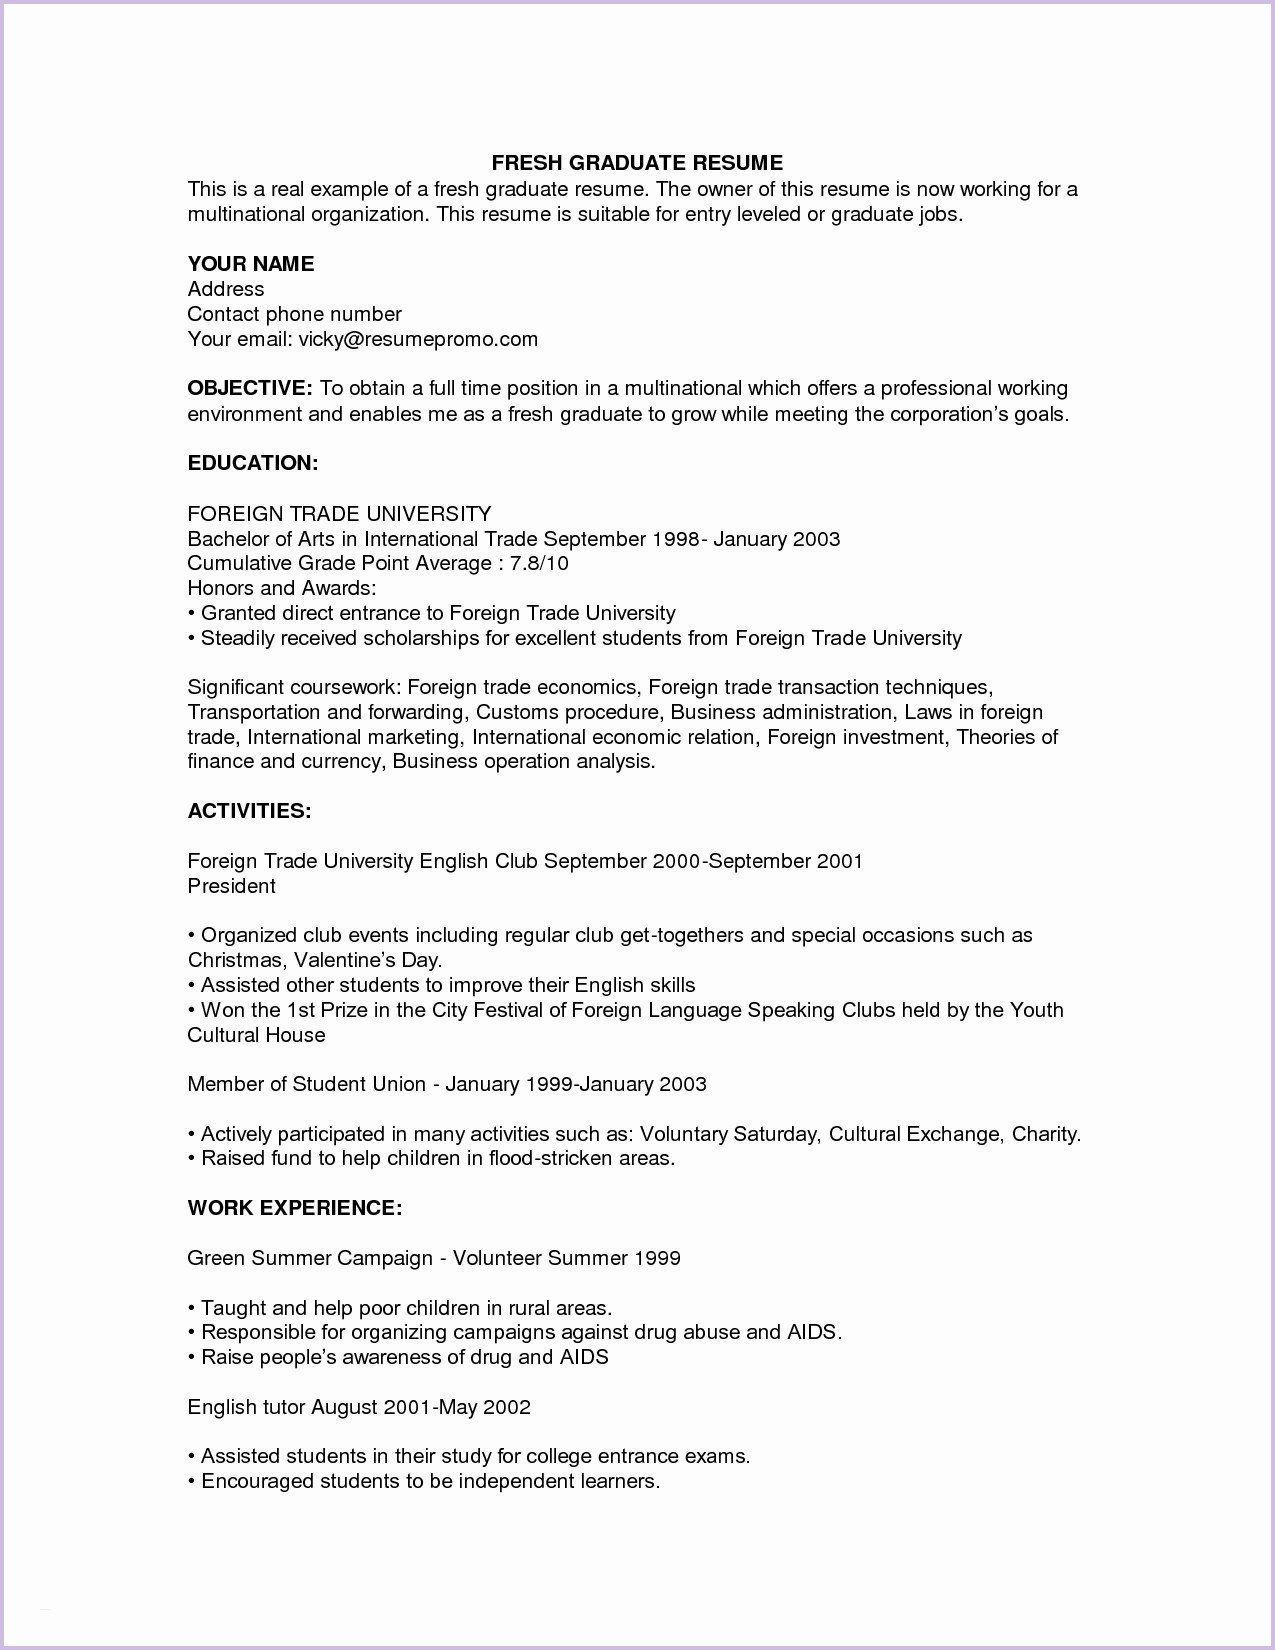 Objective In Resume For Fresh Graduate Fresh Graduate Objective Resume Job Resume Samples Student Resume Template Best Resume Format